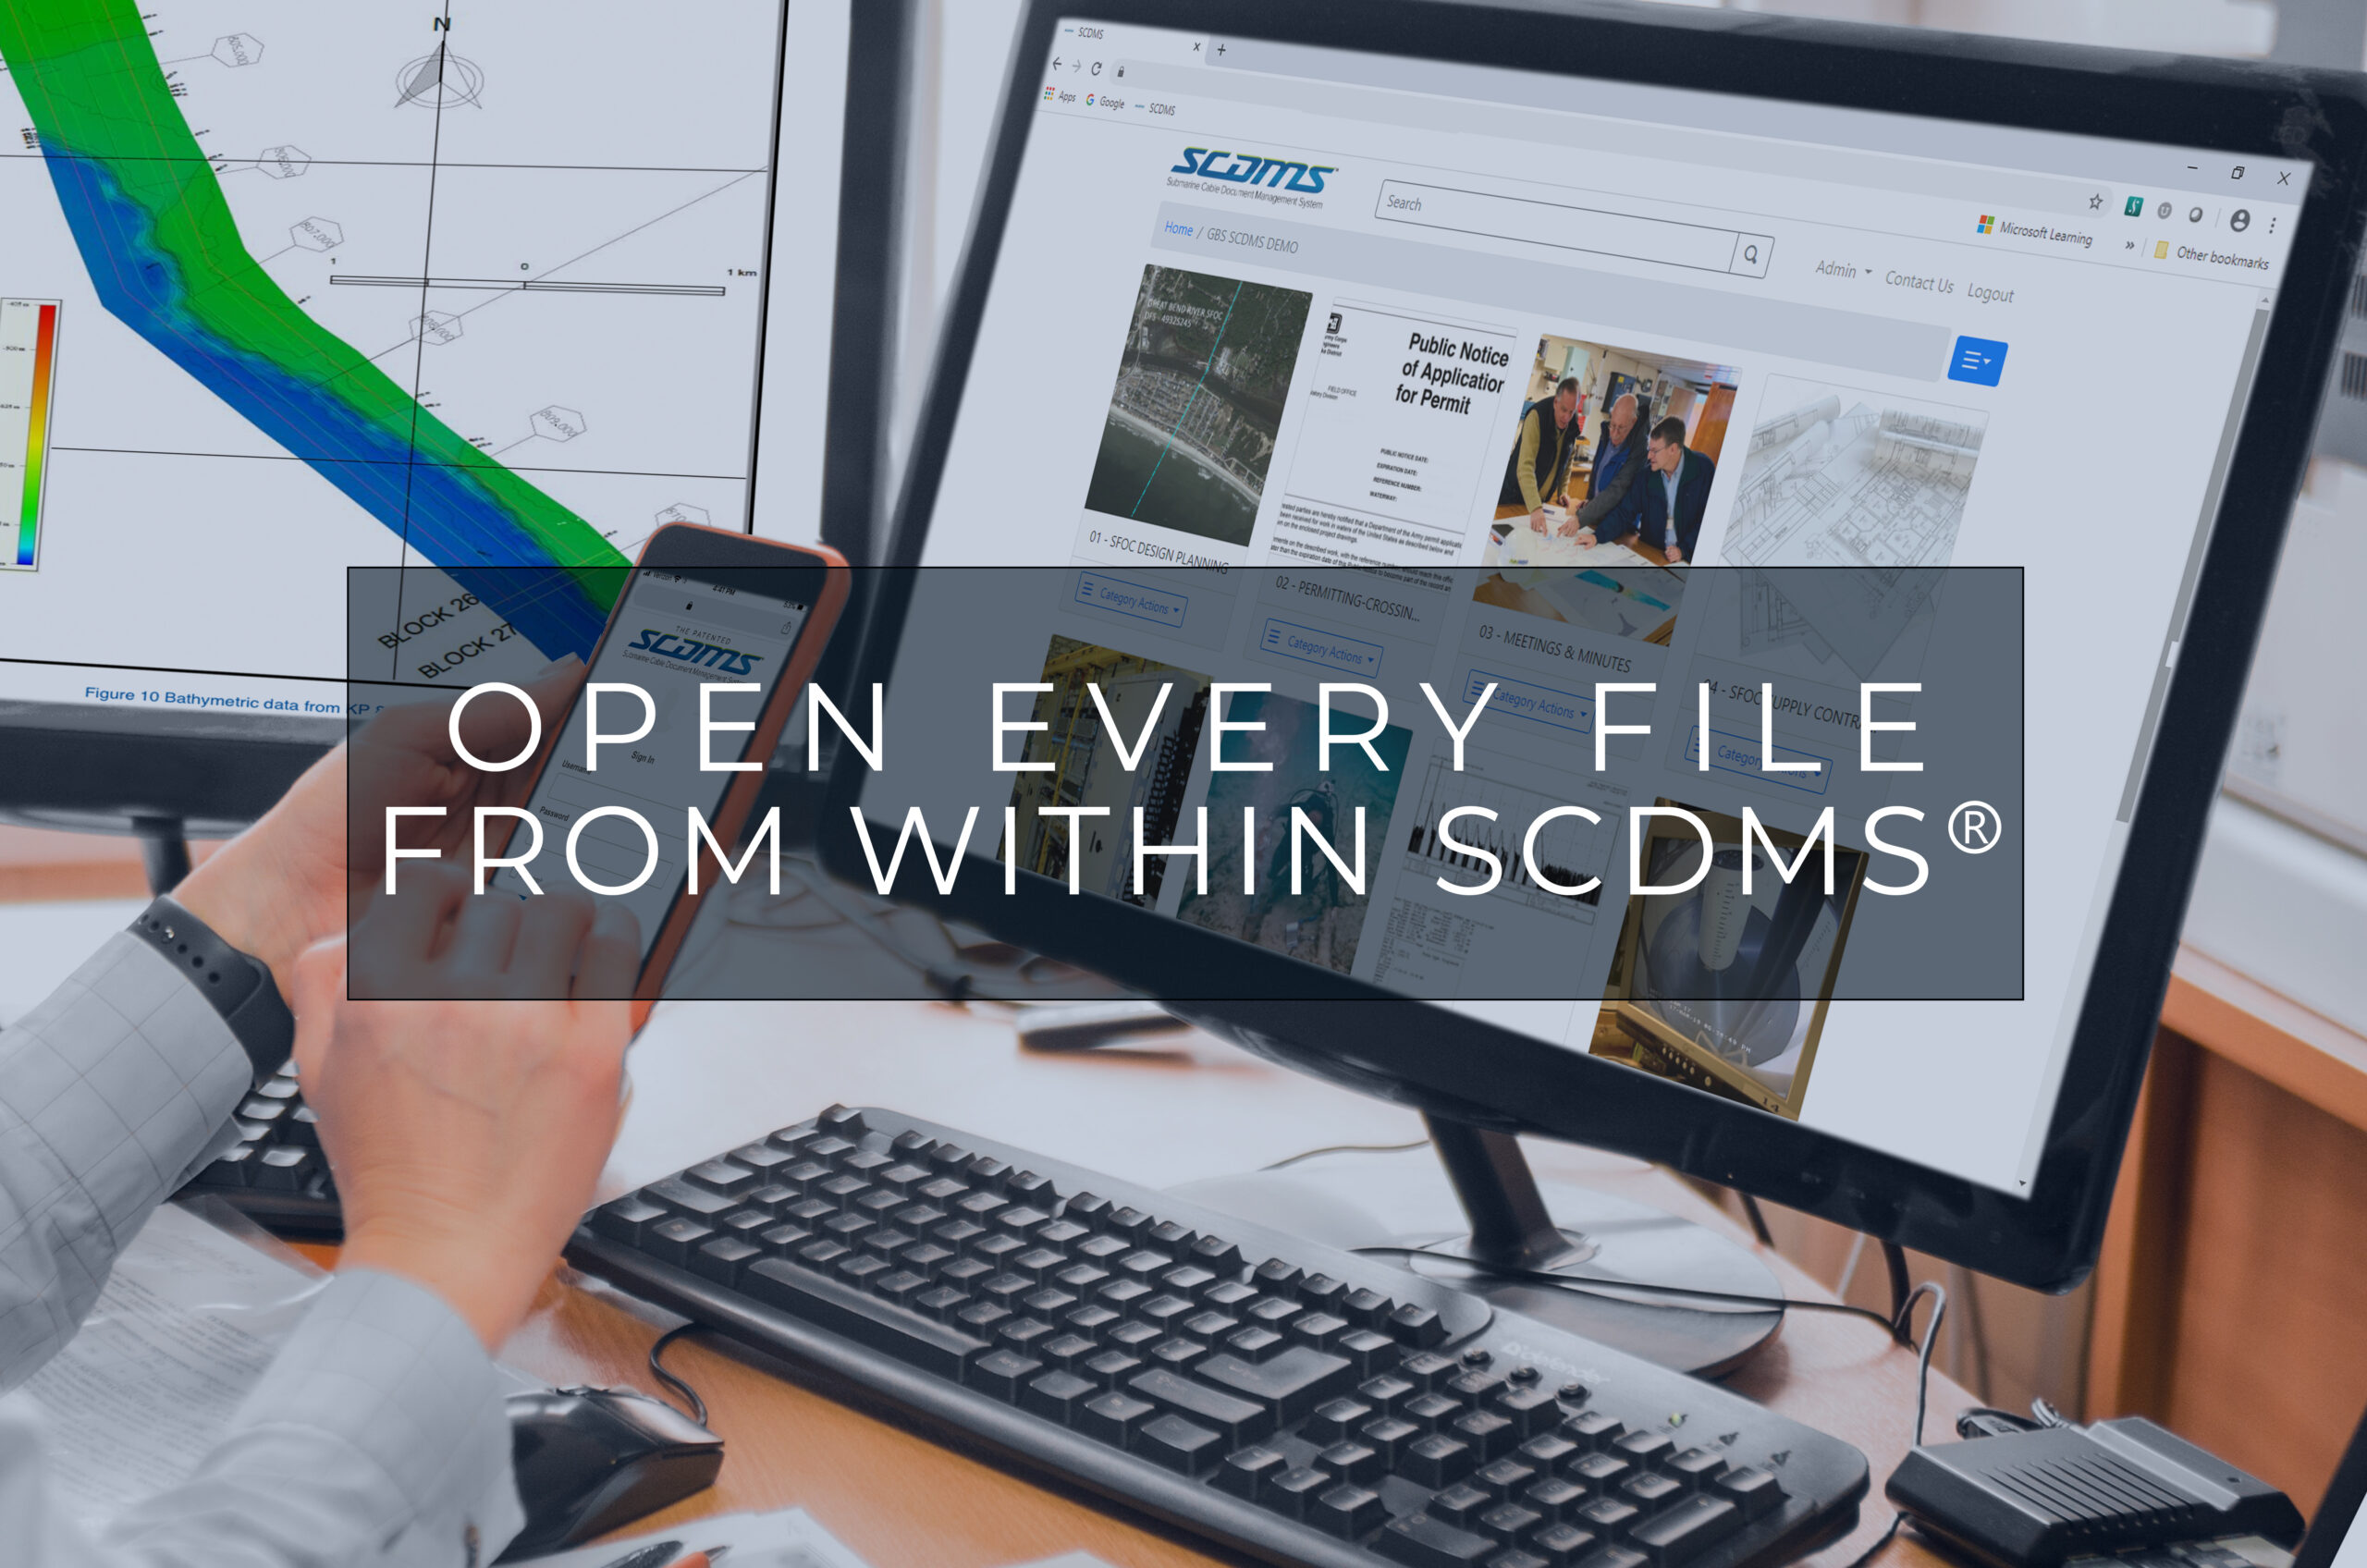 Open every file from within SCDMS